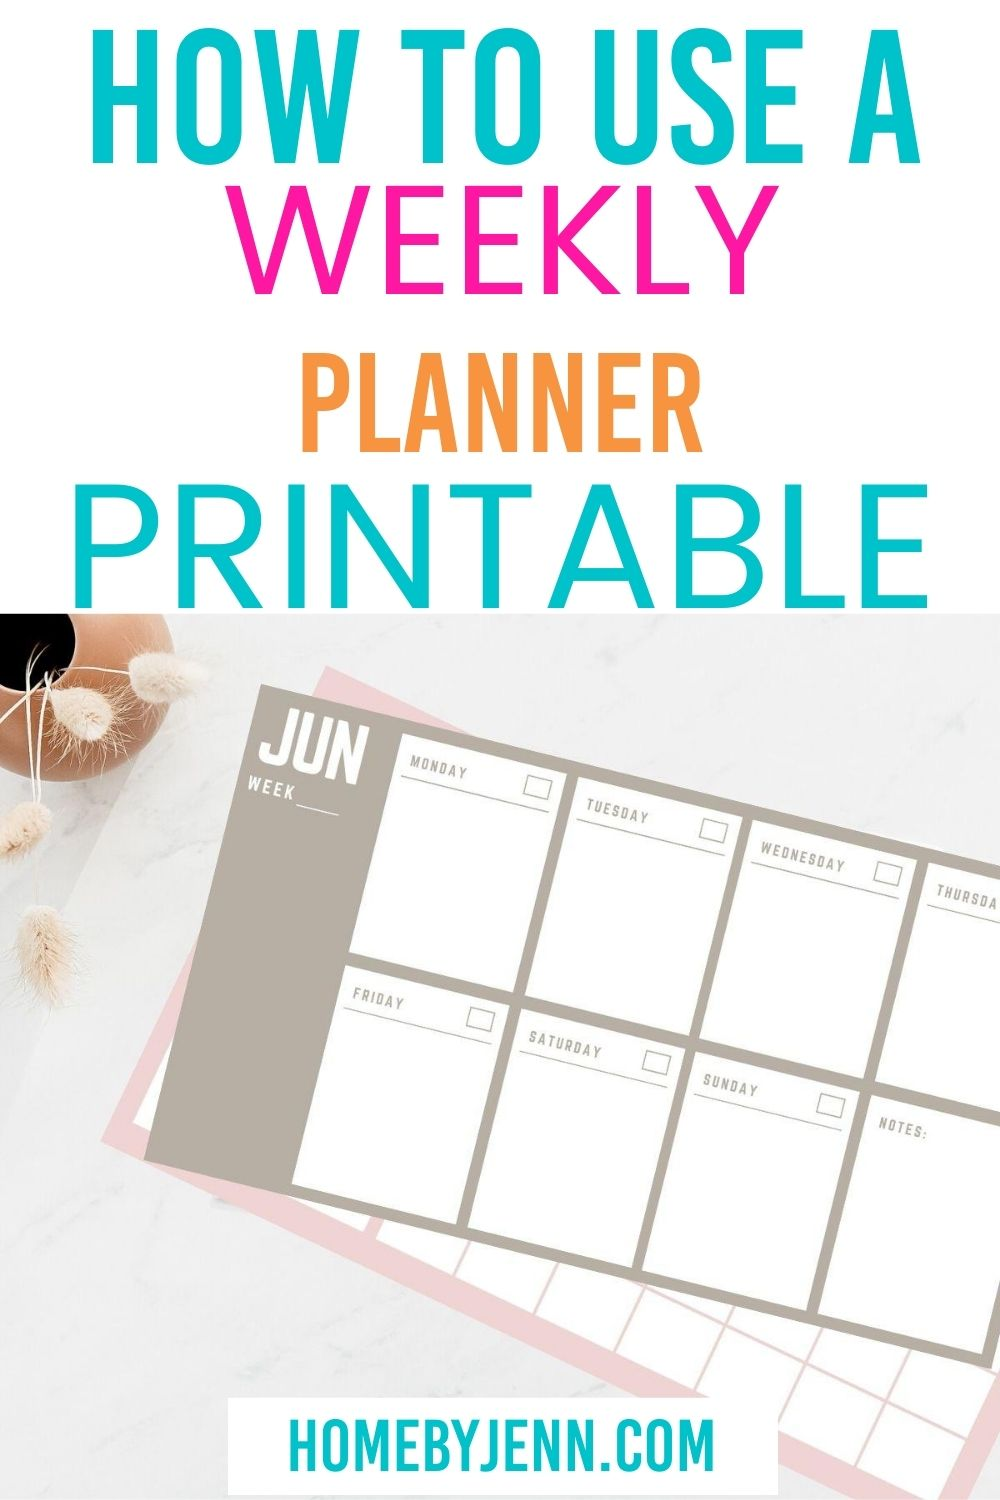 Learn how to use a Weekly Planner to help you get organized once and for all! Plus score a free printable to help! #planner #weekly #printable #howtouse #tips #getorganized #organizer via @homebyjenn